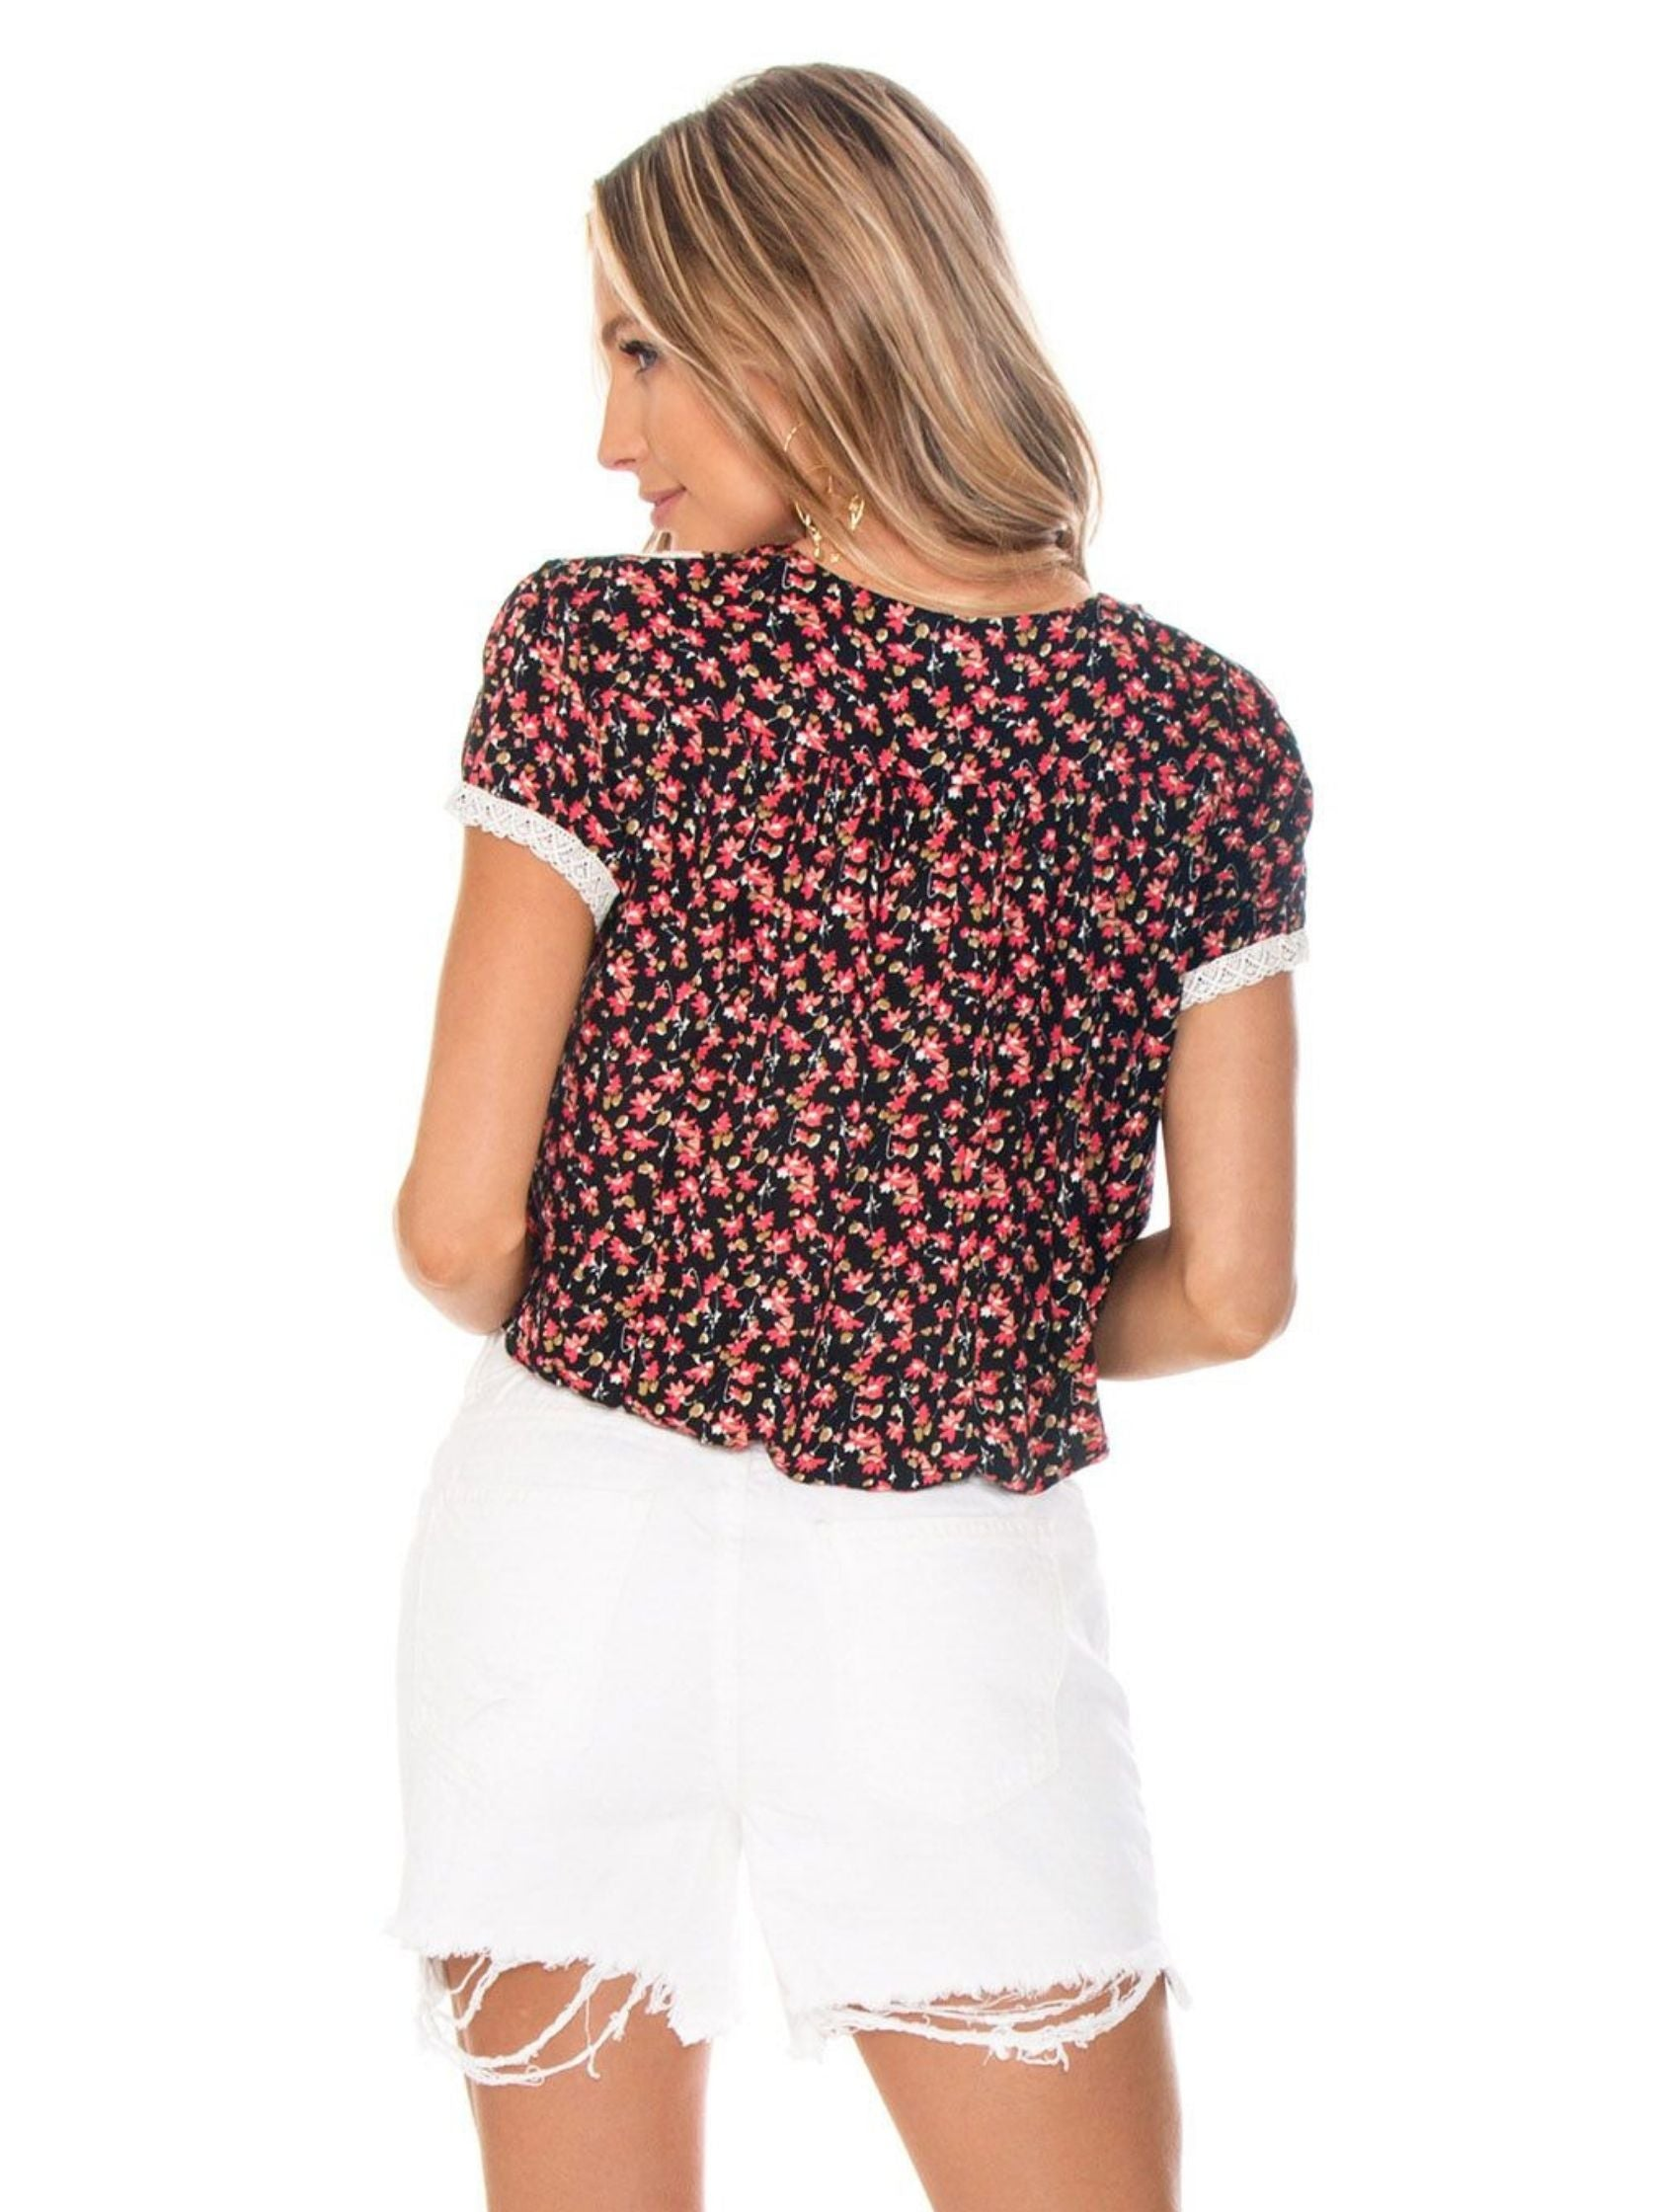 Women outfit in a top rental from Free People called The Ana Black Floral Print Button-up Top